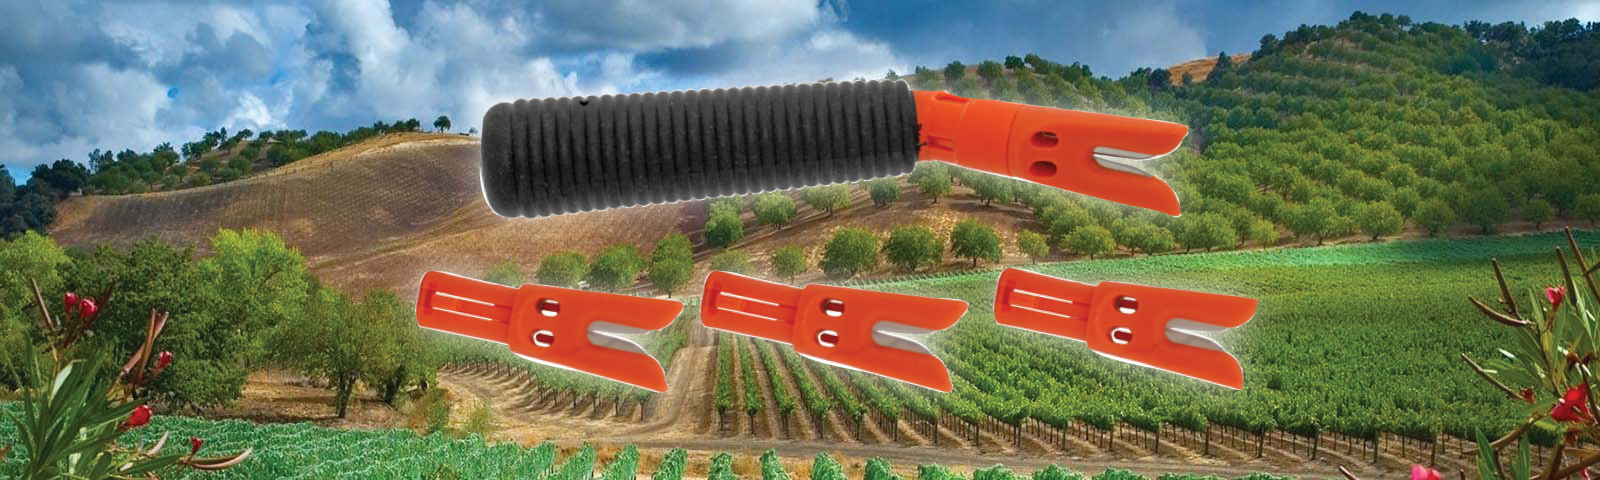 Grape Razor Vineyard Safety Harvest Tool